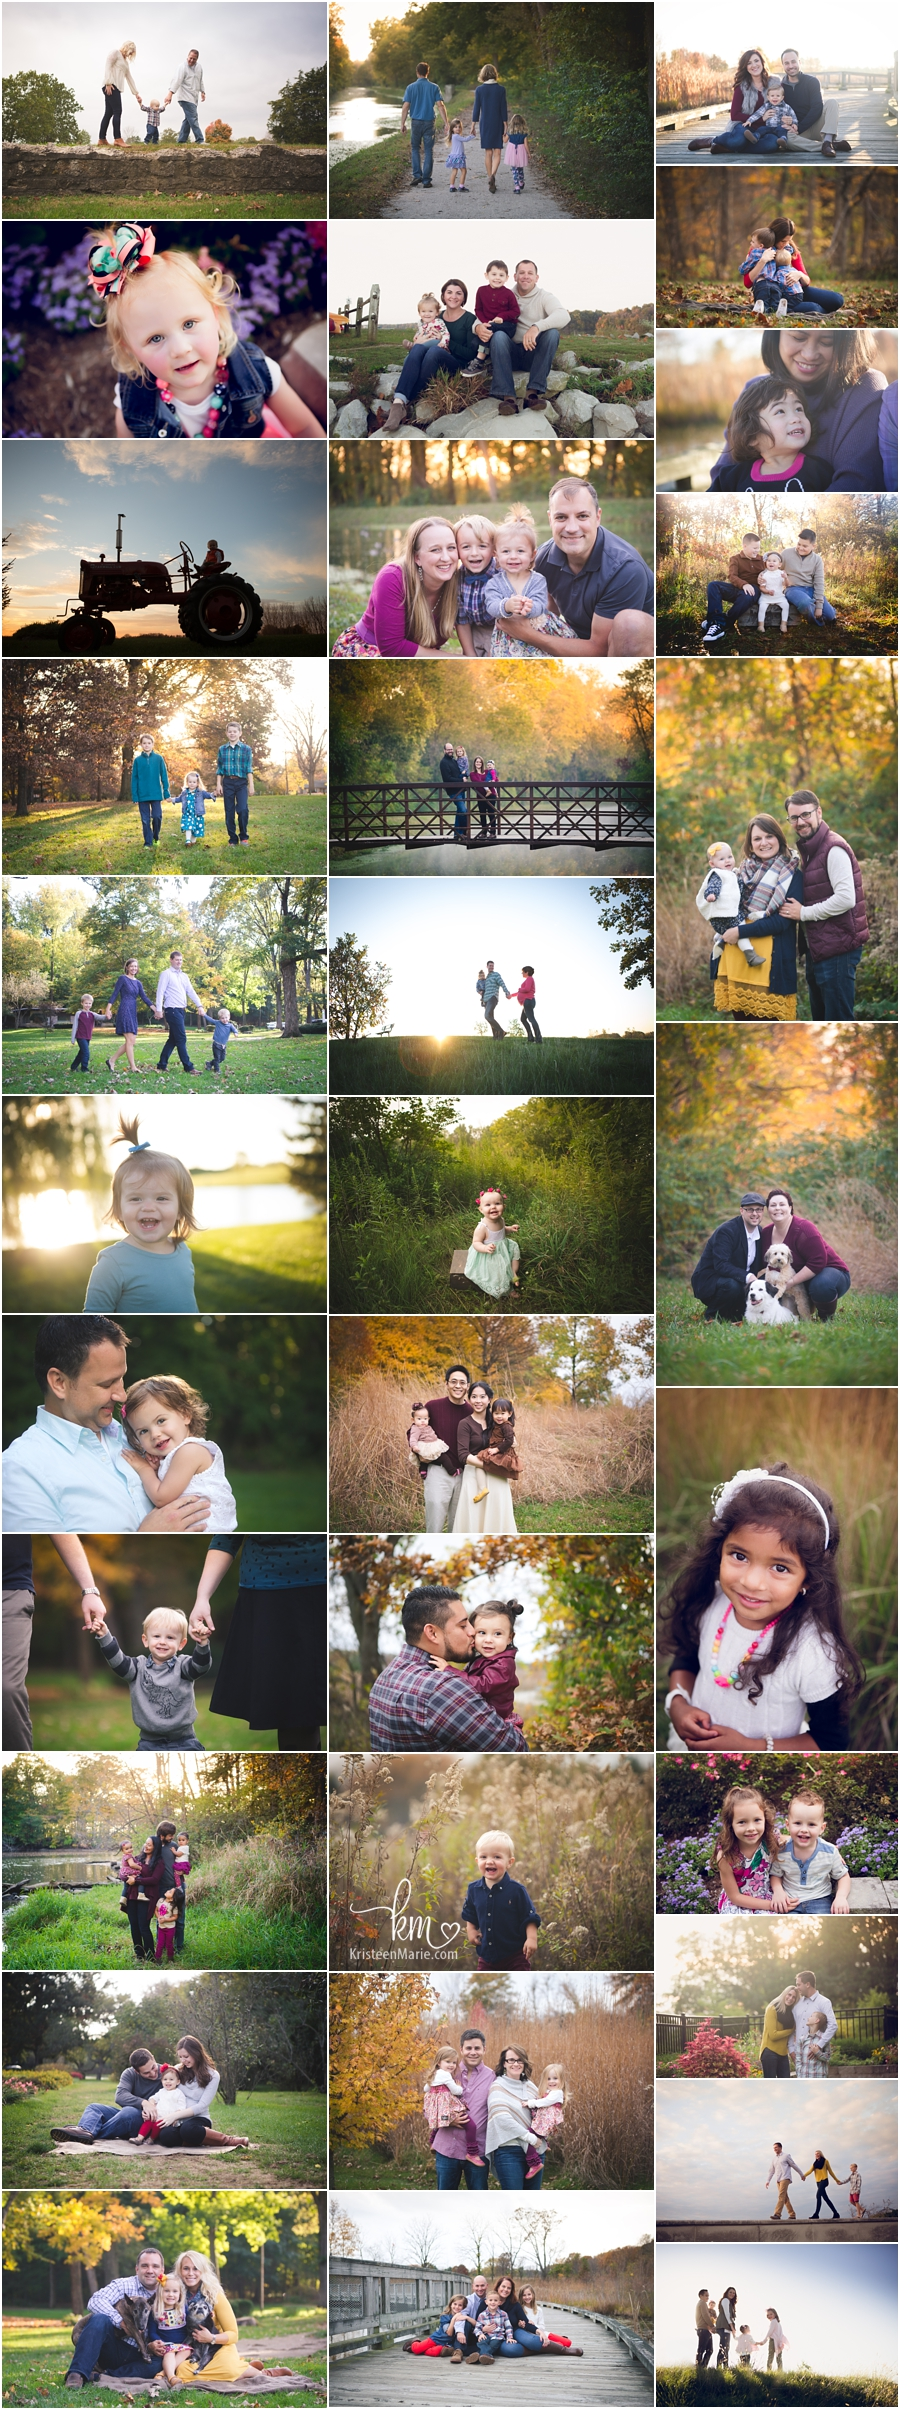 Indianapolis family photography - KristeenMarie Photo